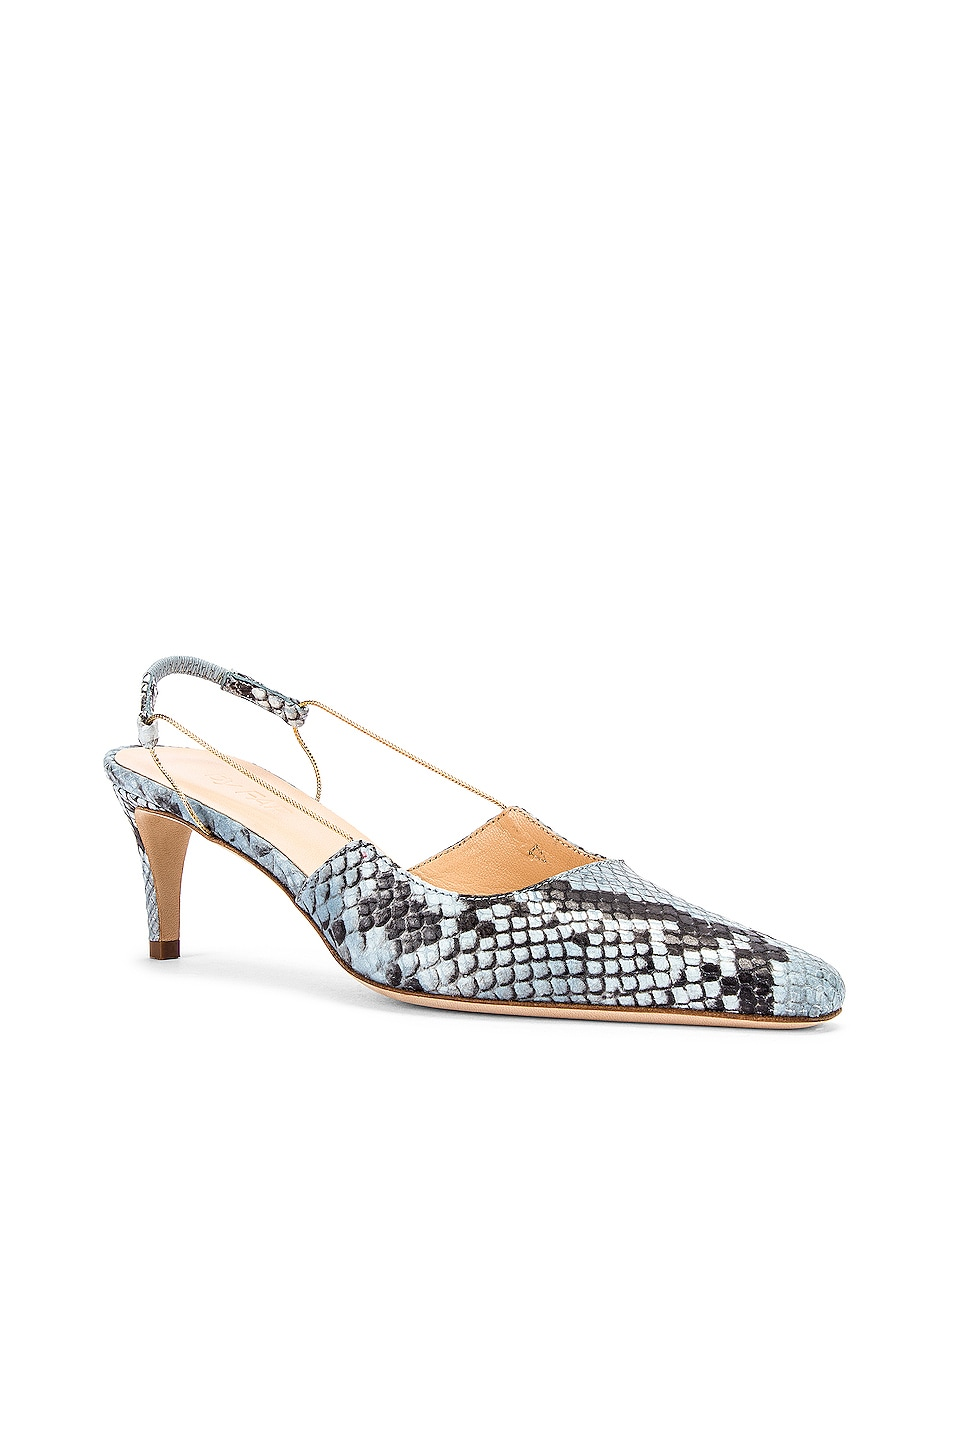 Image 2 of BY FAR Gabriella Snake Print Leather Pump in Light Blue